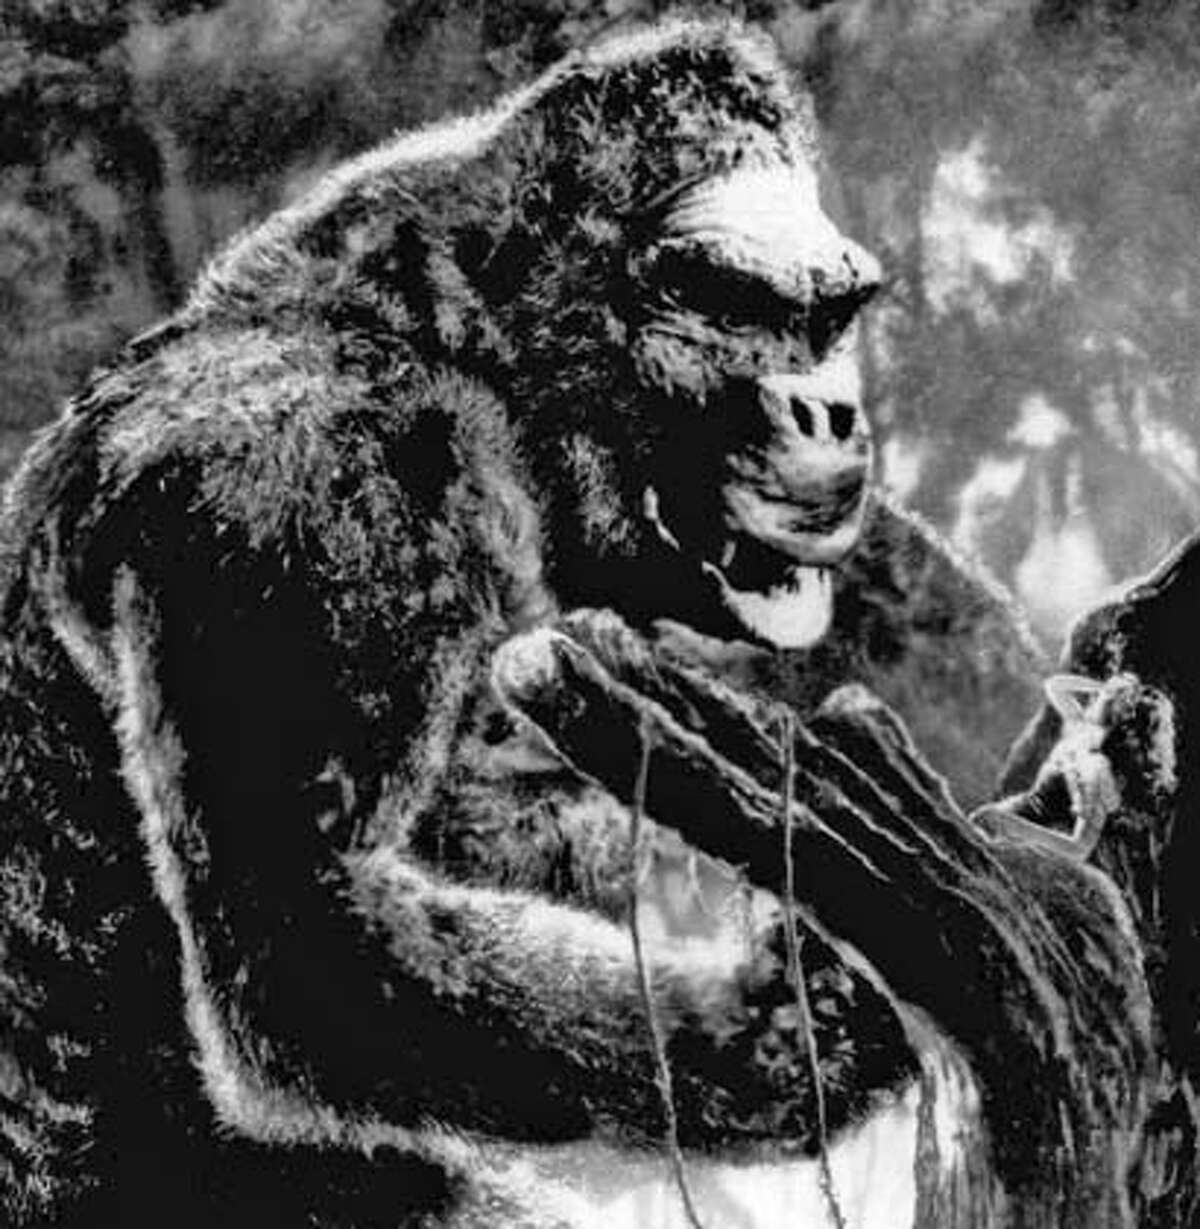 """King Kong views actress Fay Wray on a limb of a giant tree in a scene from the classic 1933 film """"King Kong."""" Wray, 96, died Sunday, Aug.8, 2004, at her Manhattan apartment, said Rick McKay, a friend and director of the last film she appeared in.(AP Photo)"""